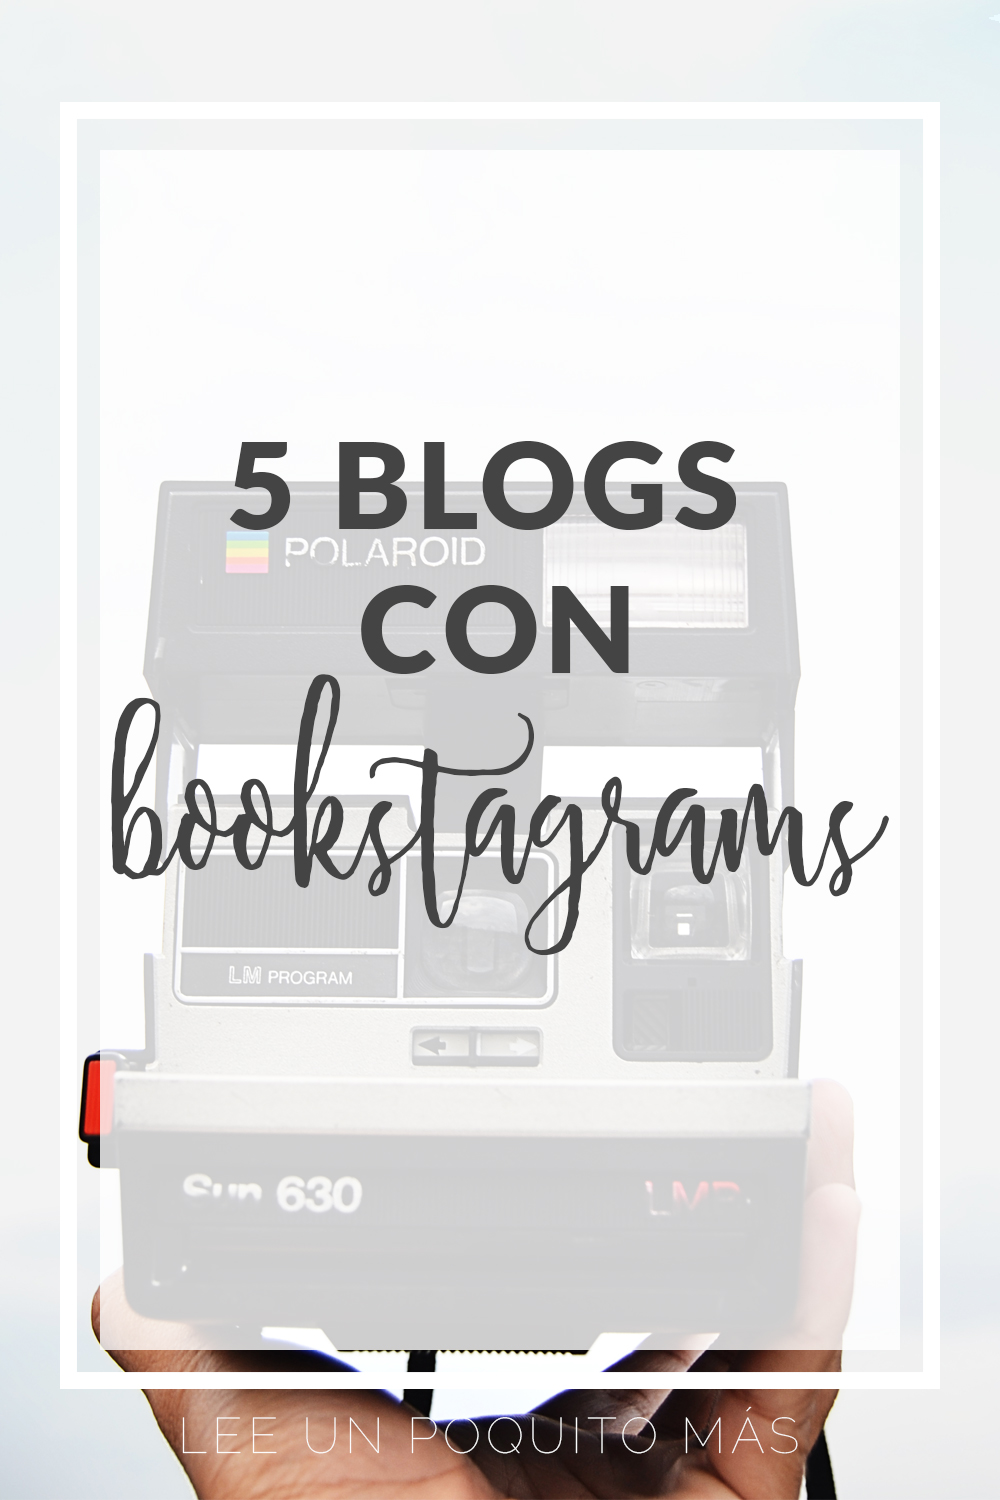 5 blogs literarios con hermosos Bookstagrams